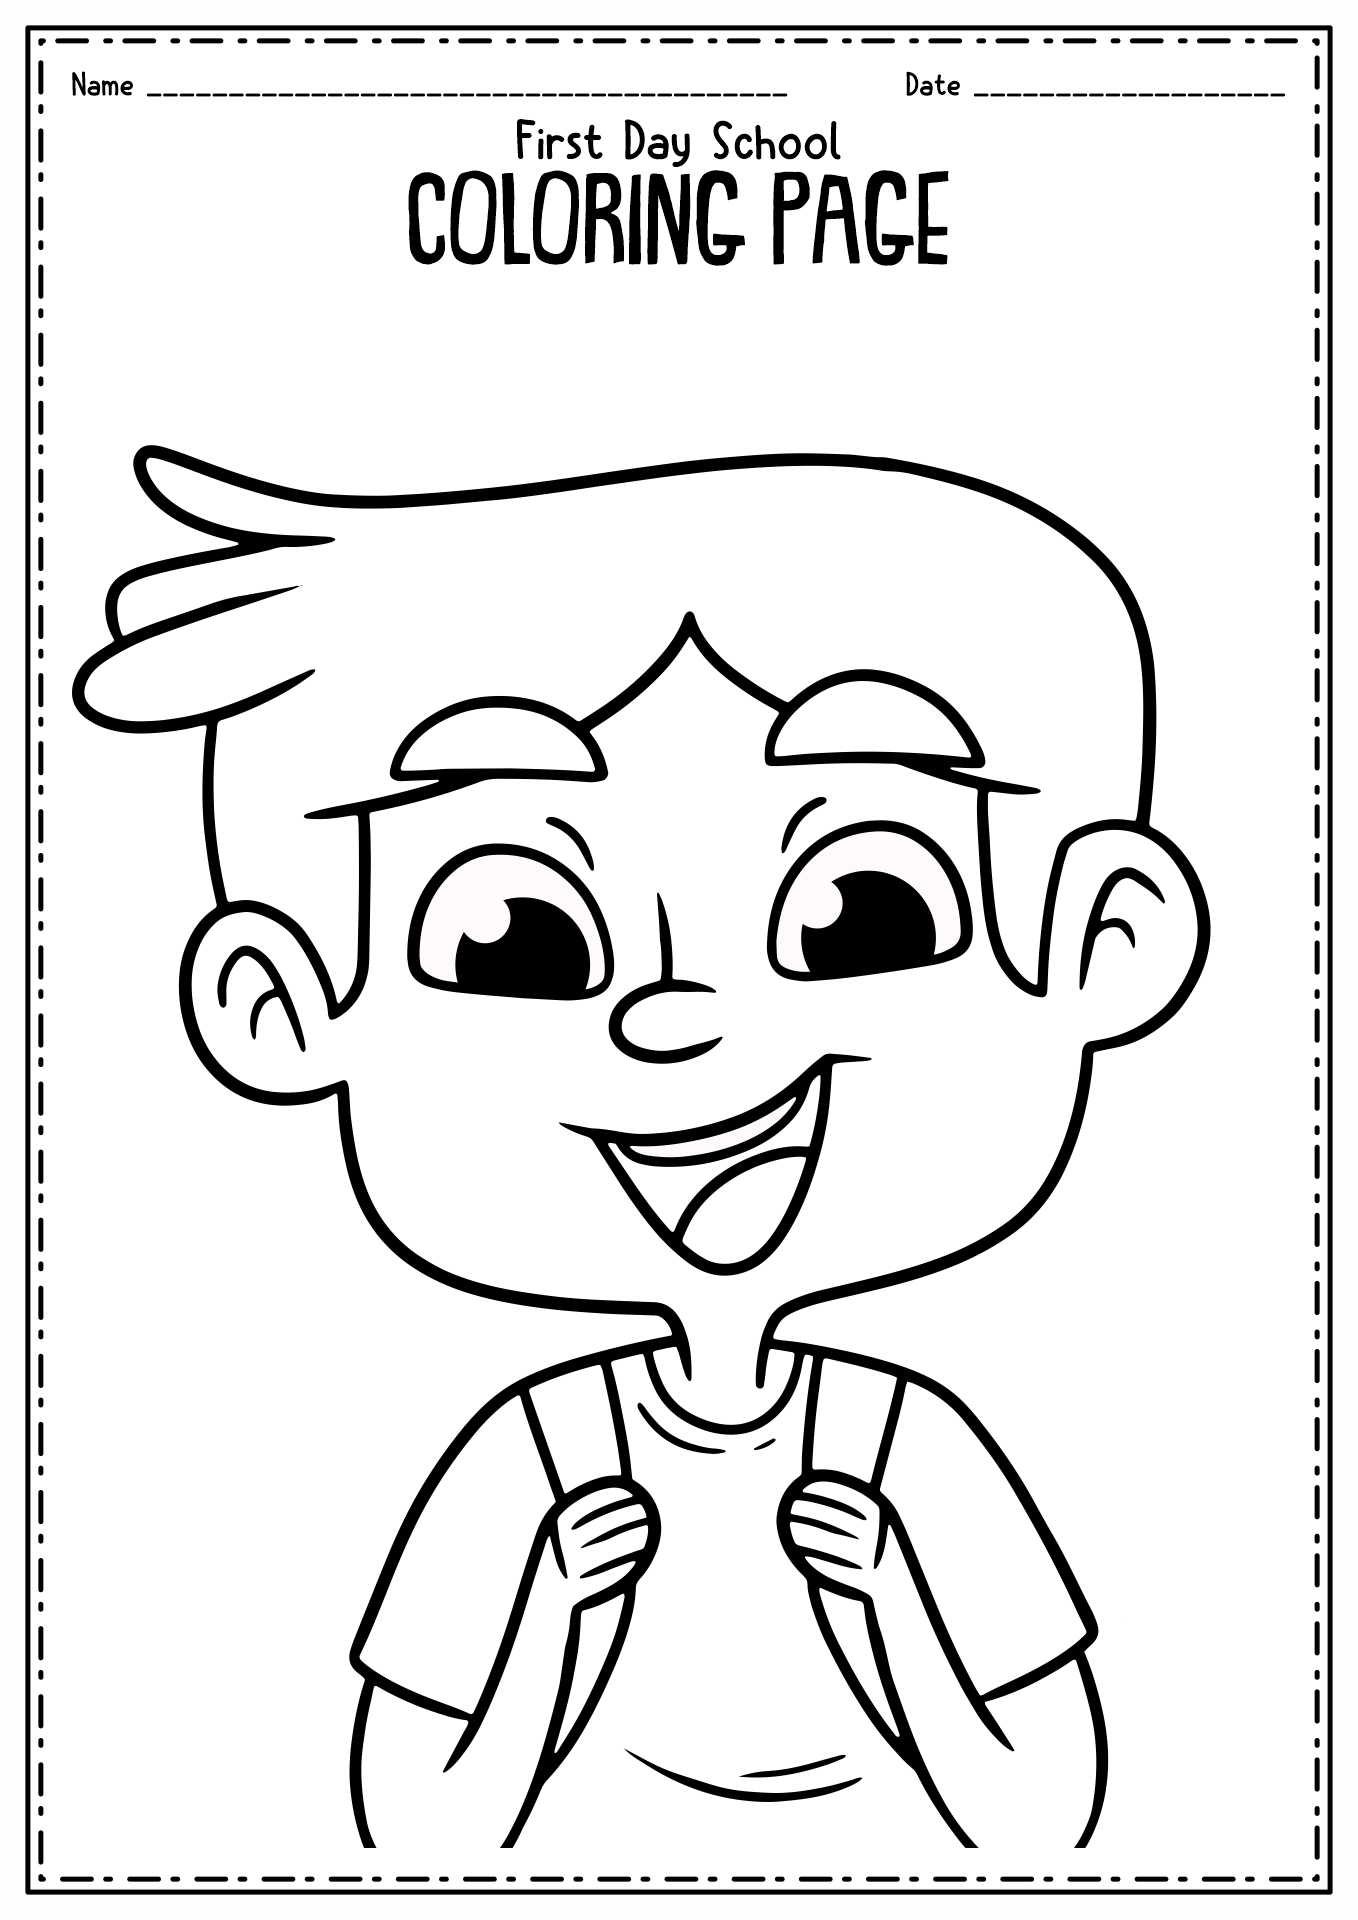 12 Best Images of First Day Of Preschool Printable